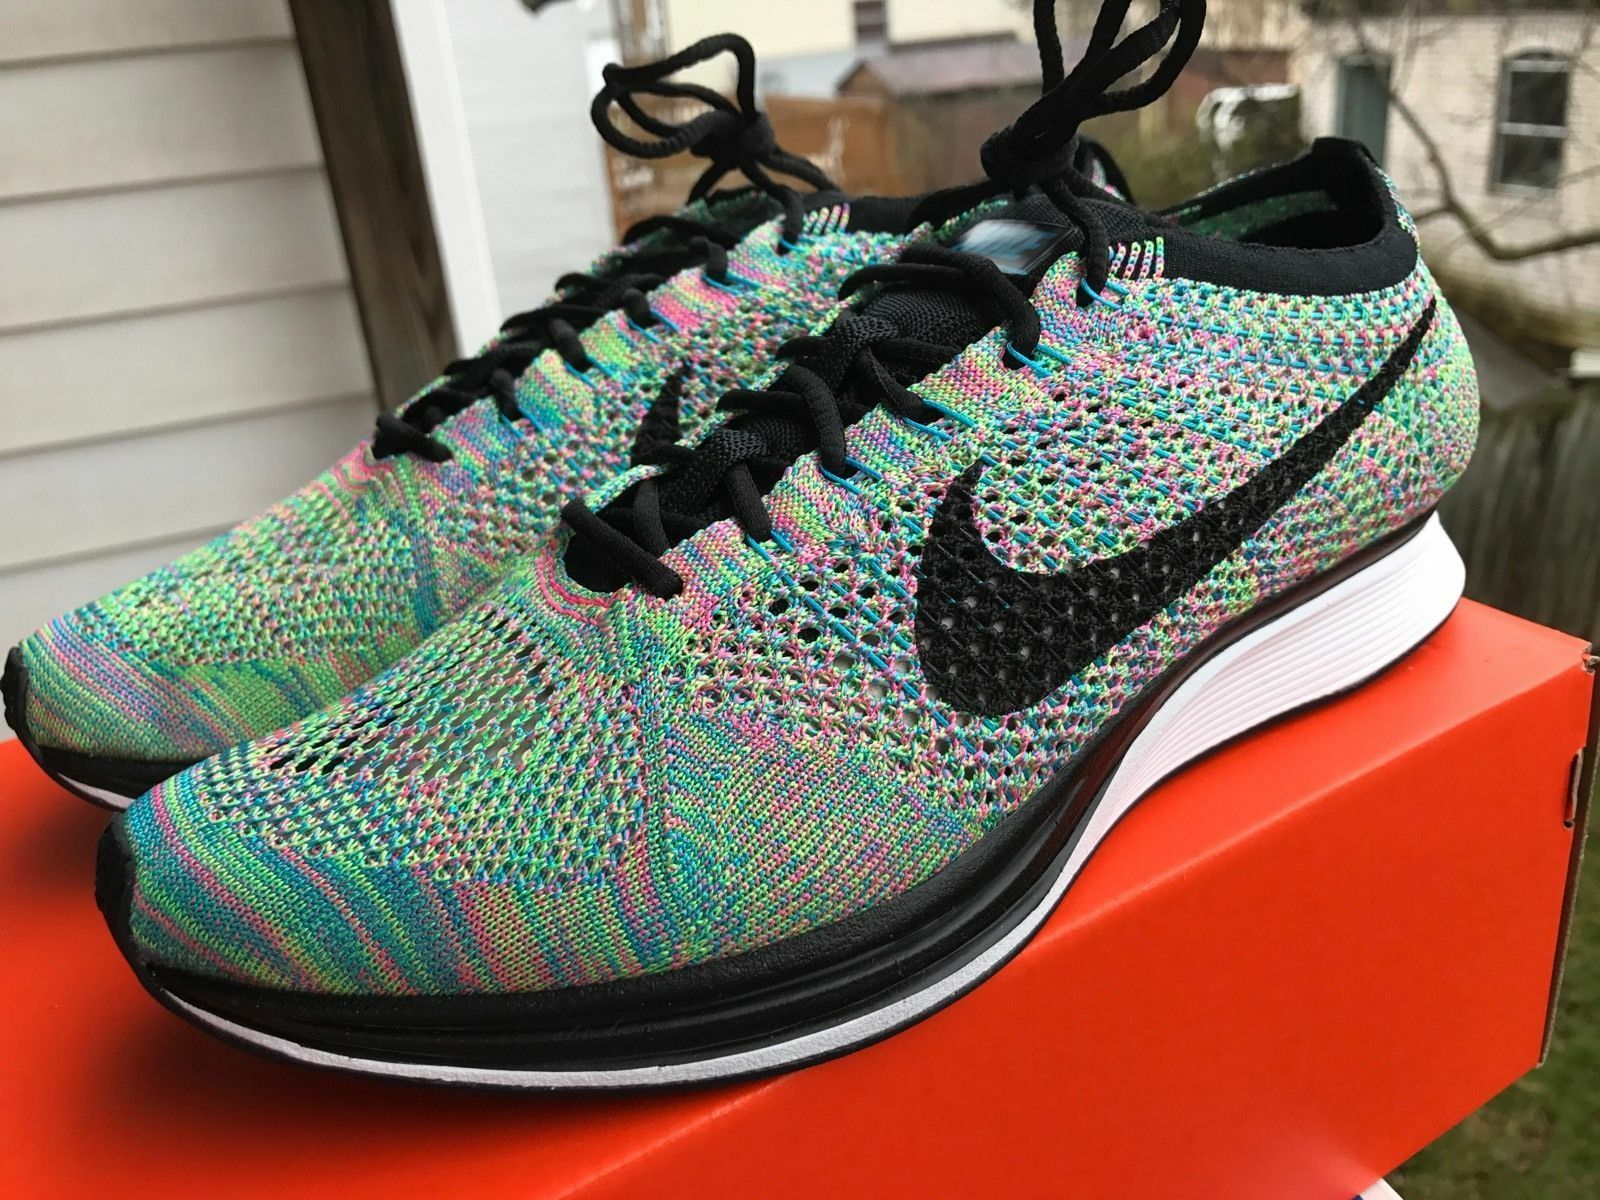 Nike Flyknit Racer Trainer MULTICOLOR 2.0 Multi Color 526628-304 Rainbow 8.5 9